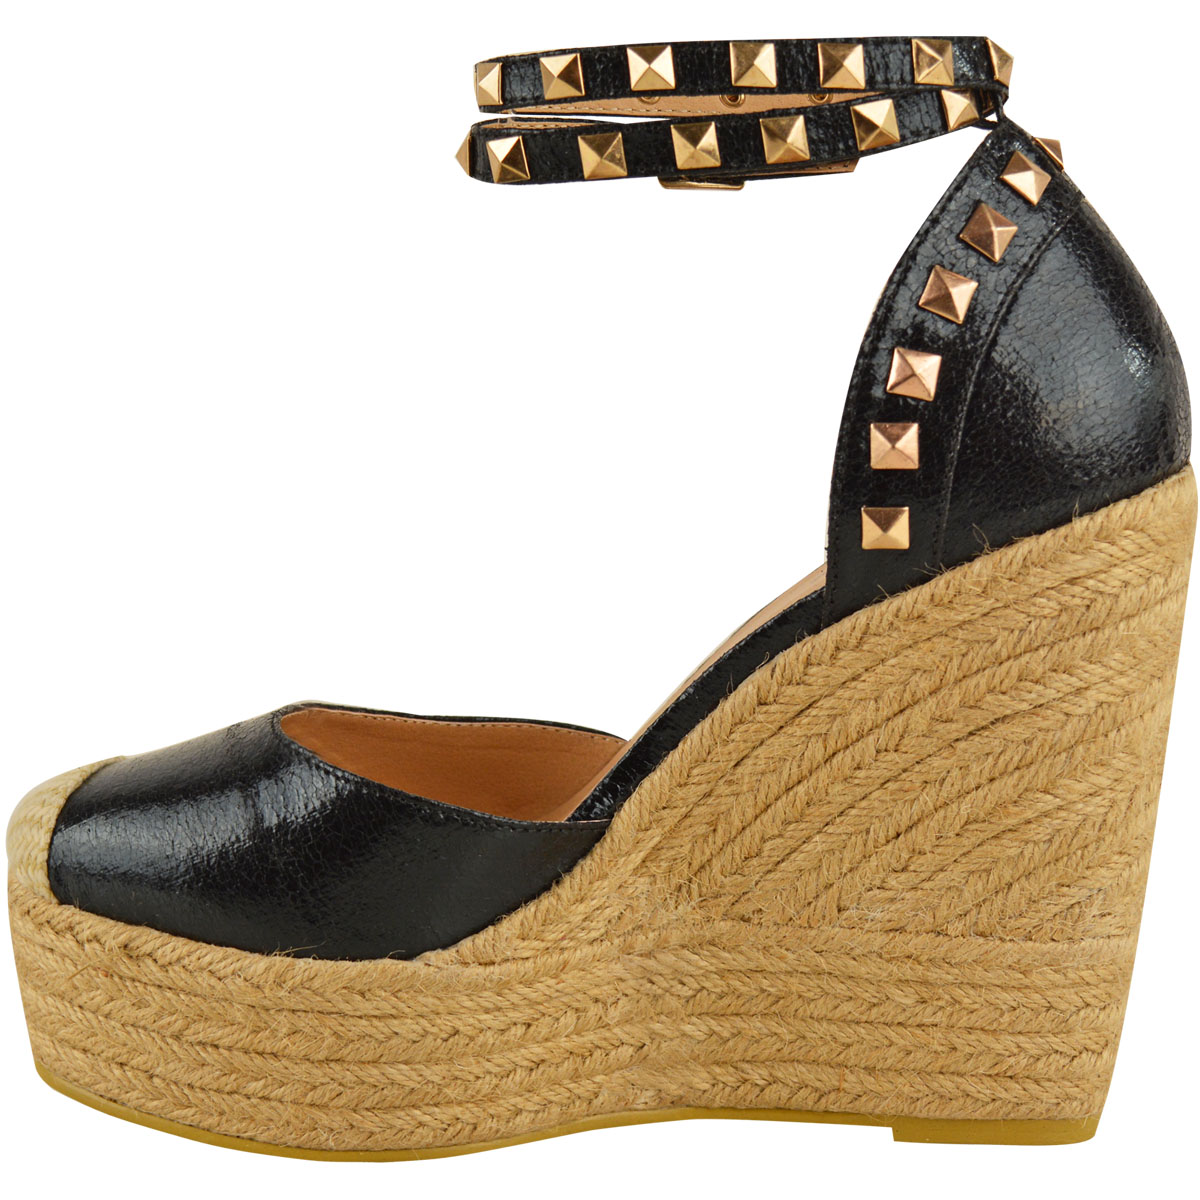 New-Womens-Stud-Espadrille-Wedge-Summer-Sandal-Ladies-Rose-Gold-Party-Shoes-Size thumbnail 20